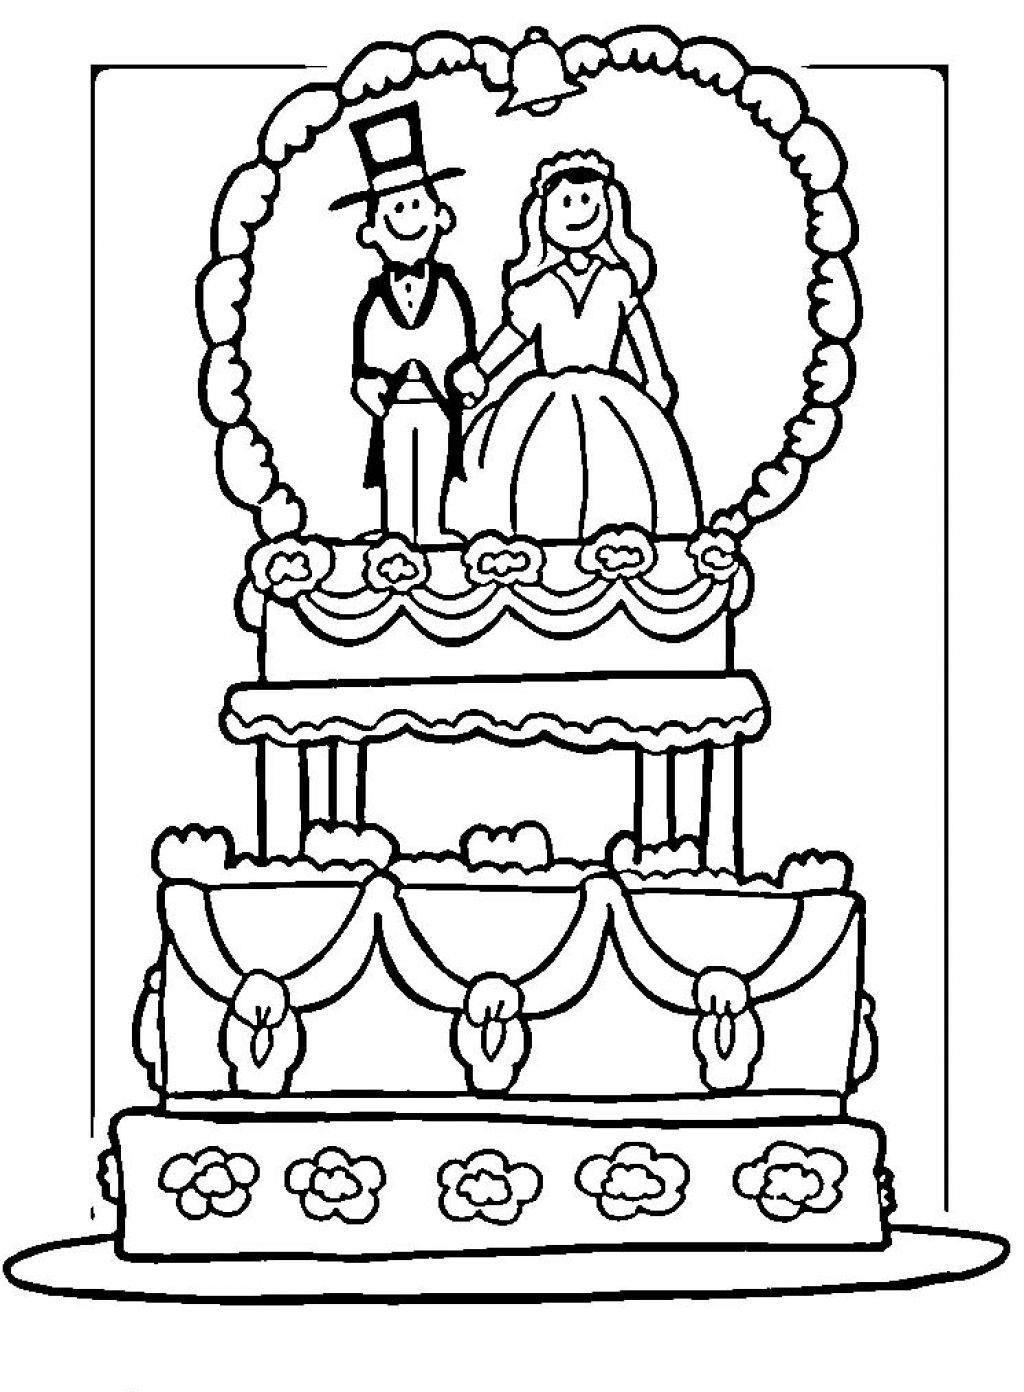 Coloring Page A Area Colori with Pages Weddi Free Printable Wedding ...